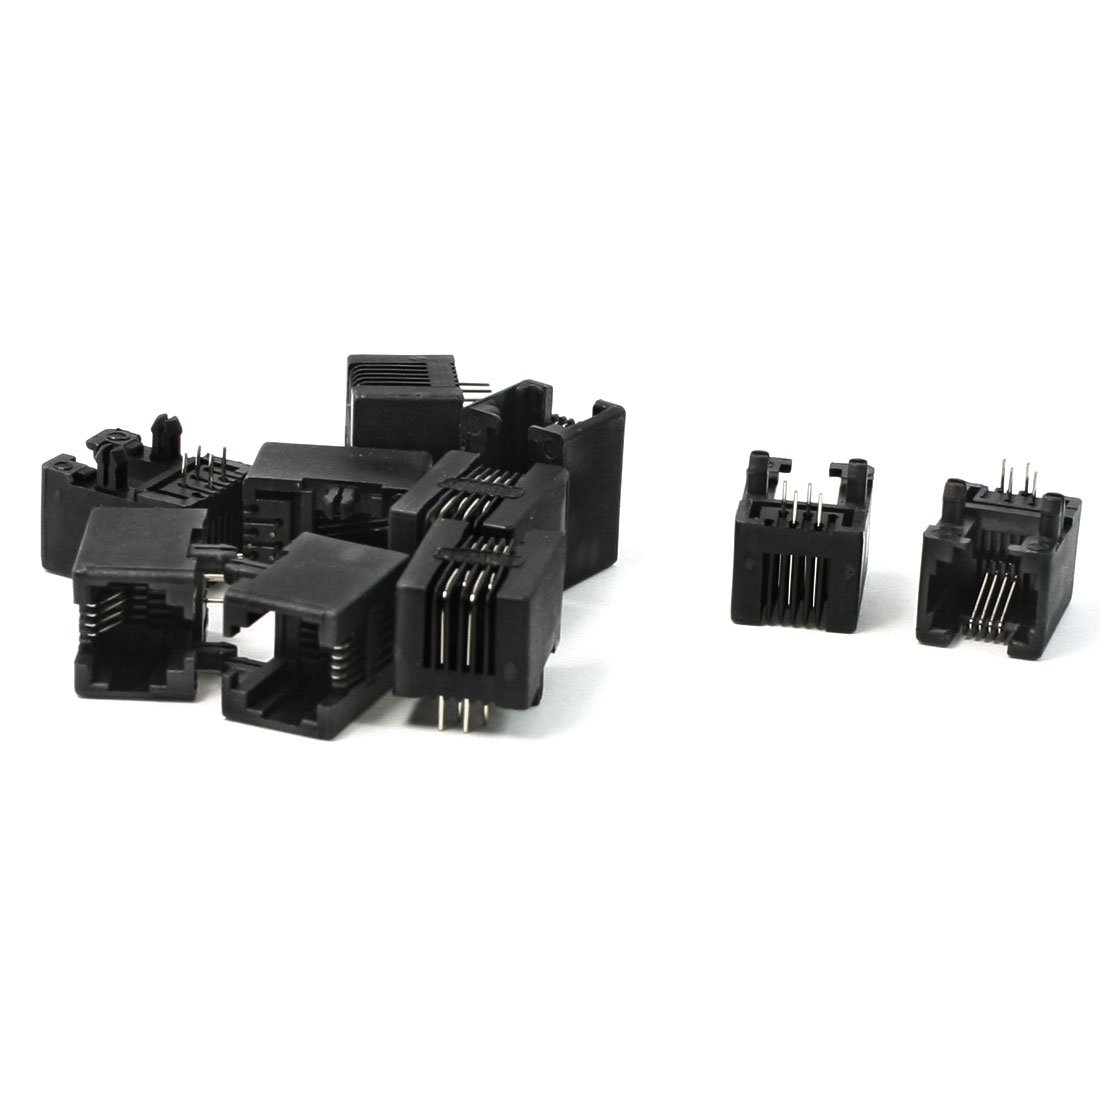 10 Pcs RJ11 4Pin Modular Network PCB Jacks Ports 17.5mm Length for WAN Network